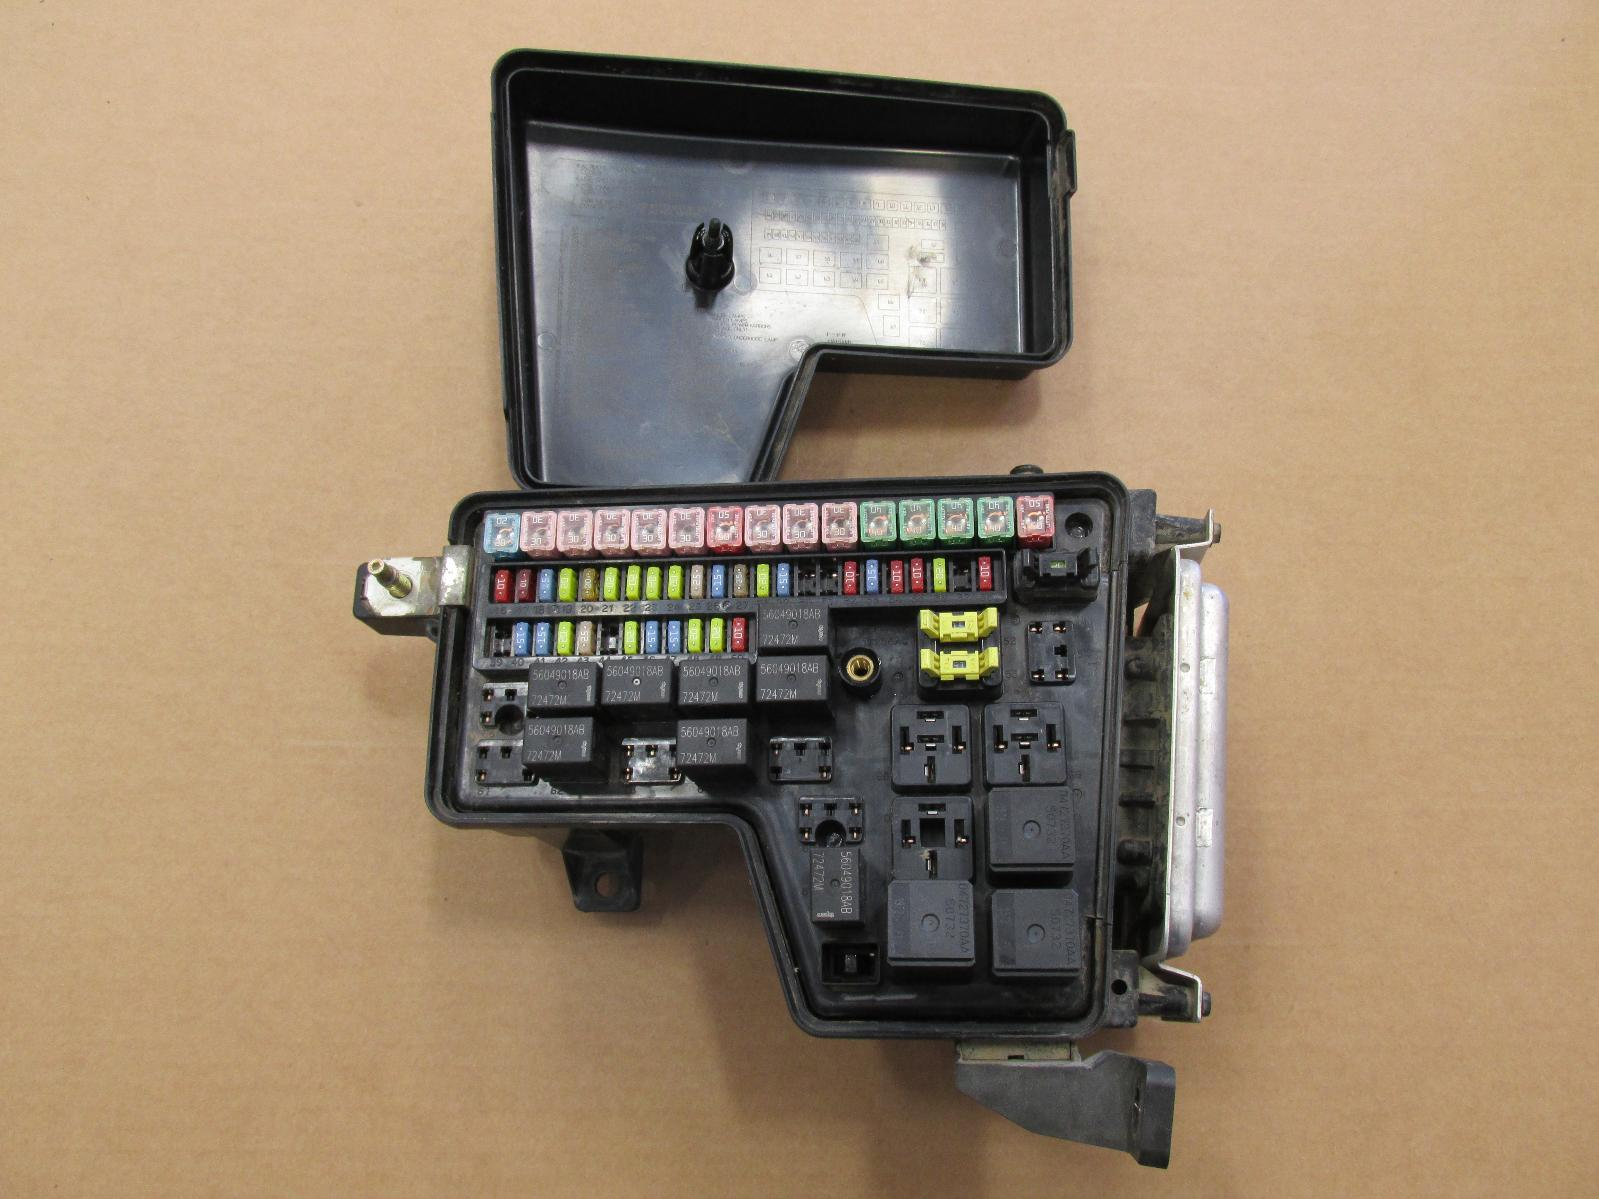 ram 1500 fuse box 09 dodge ram 1500 fuse box diagram